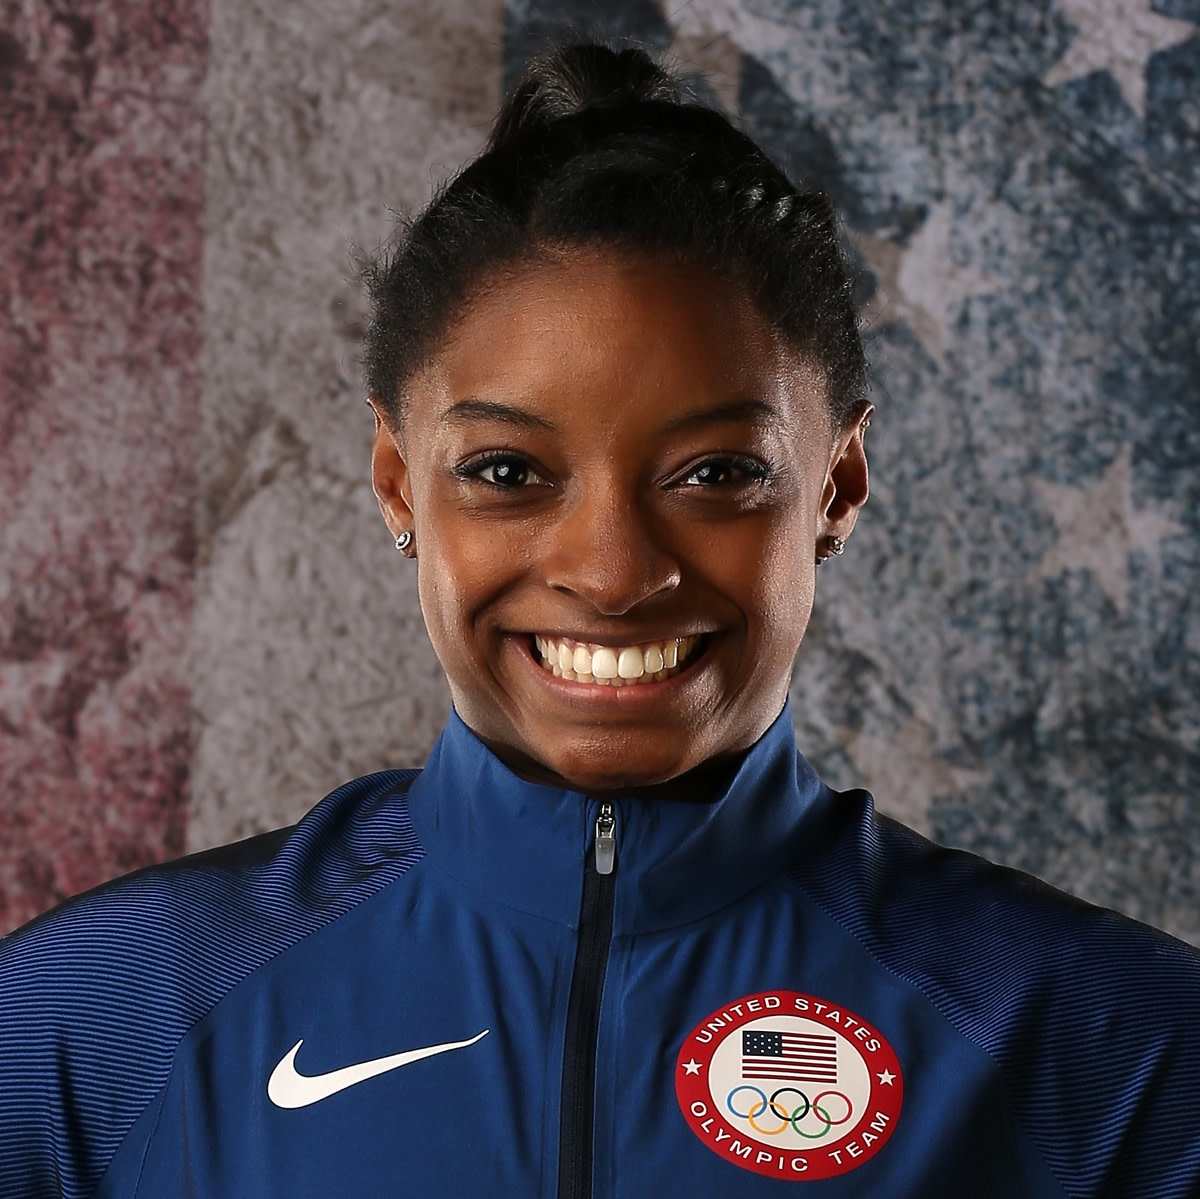 Simone Biles - Family, Life & Medals - Biography